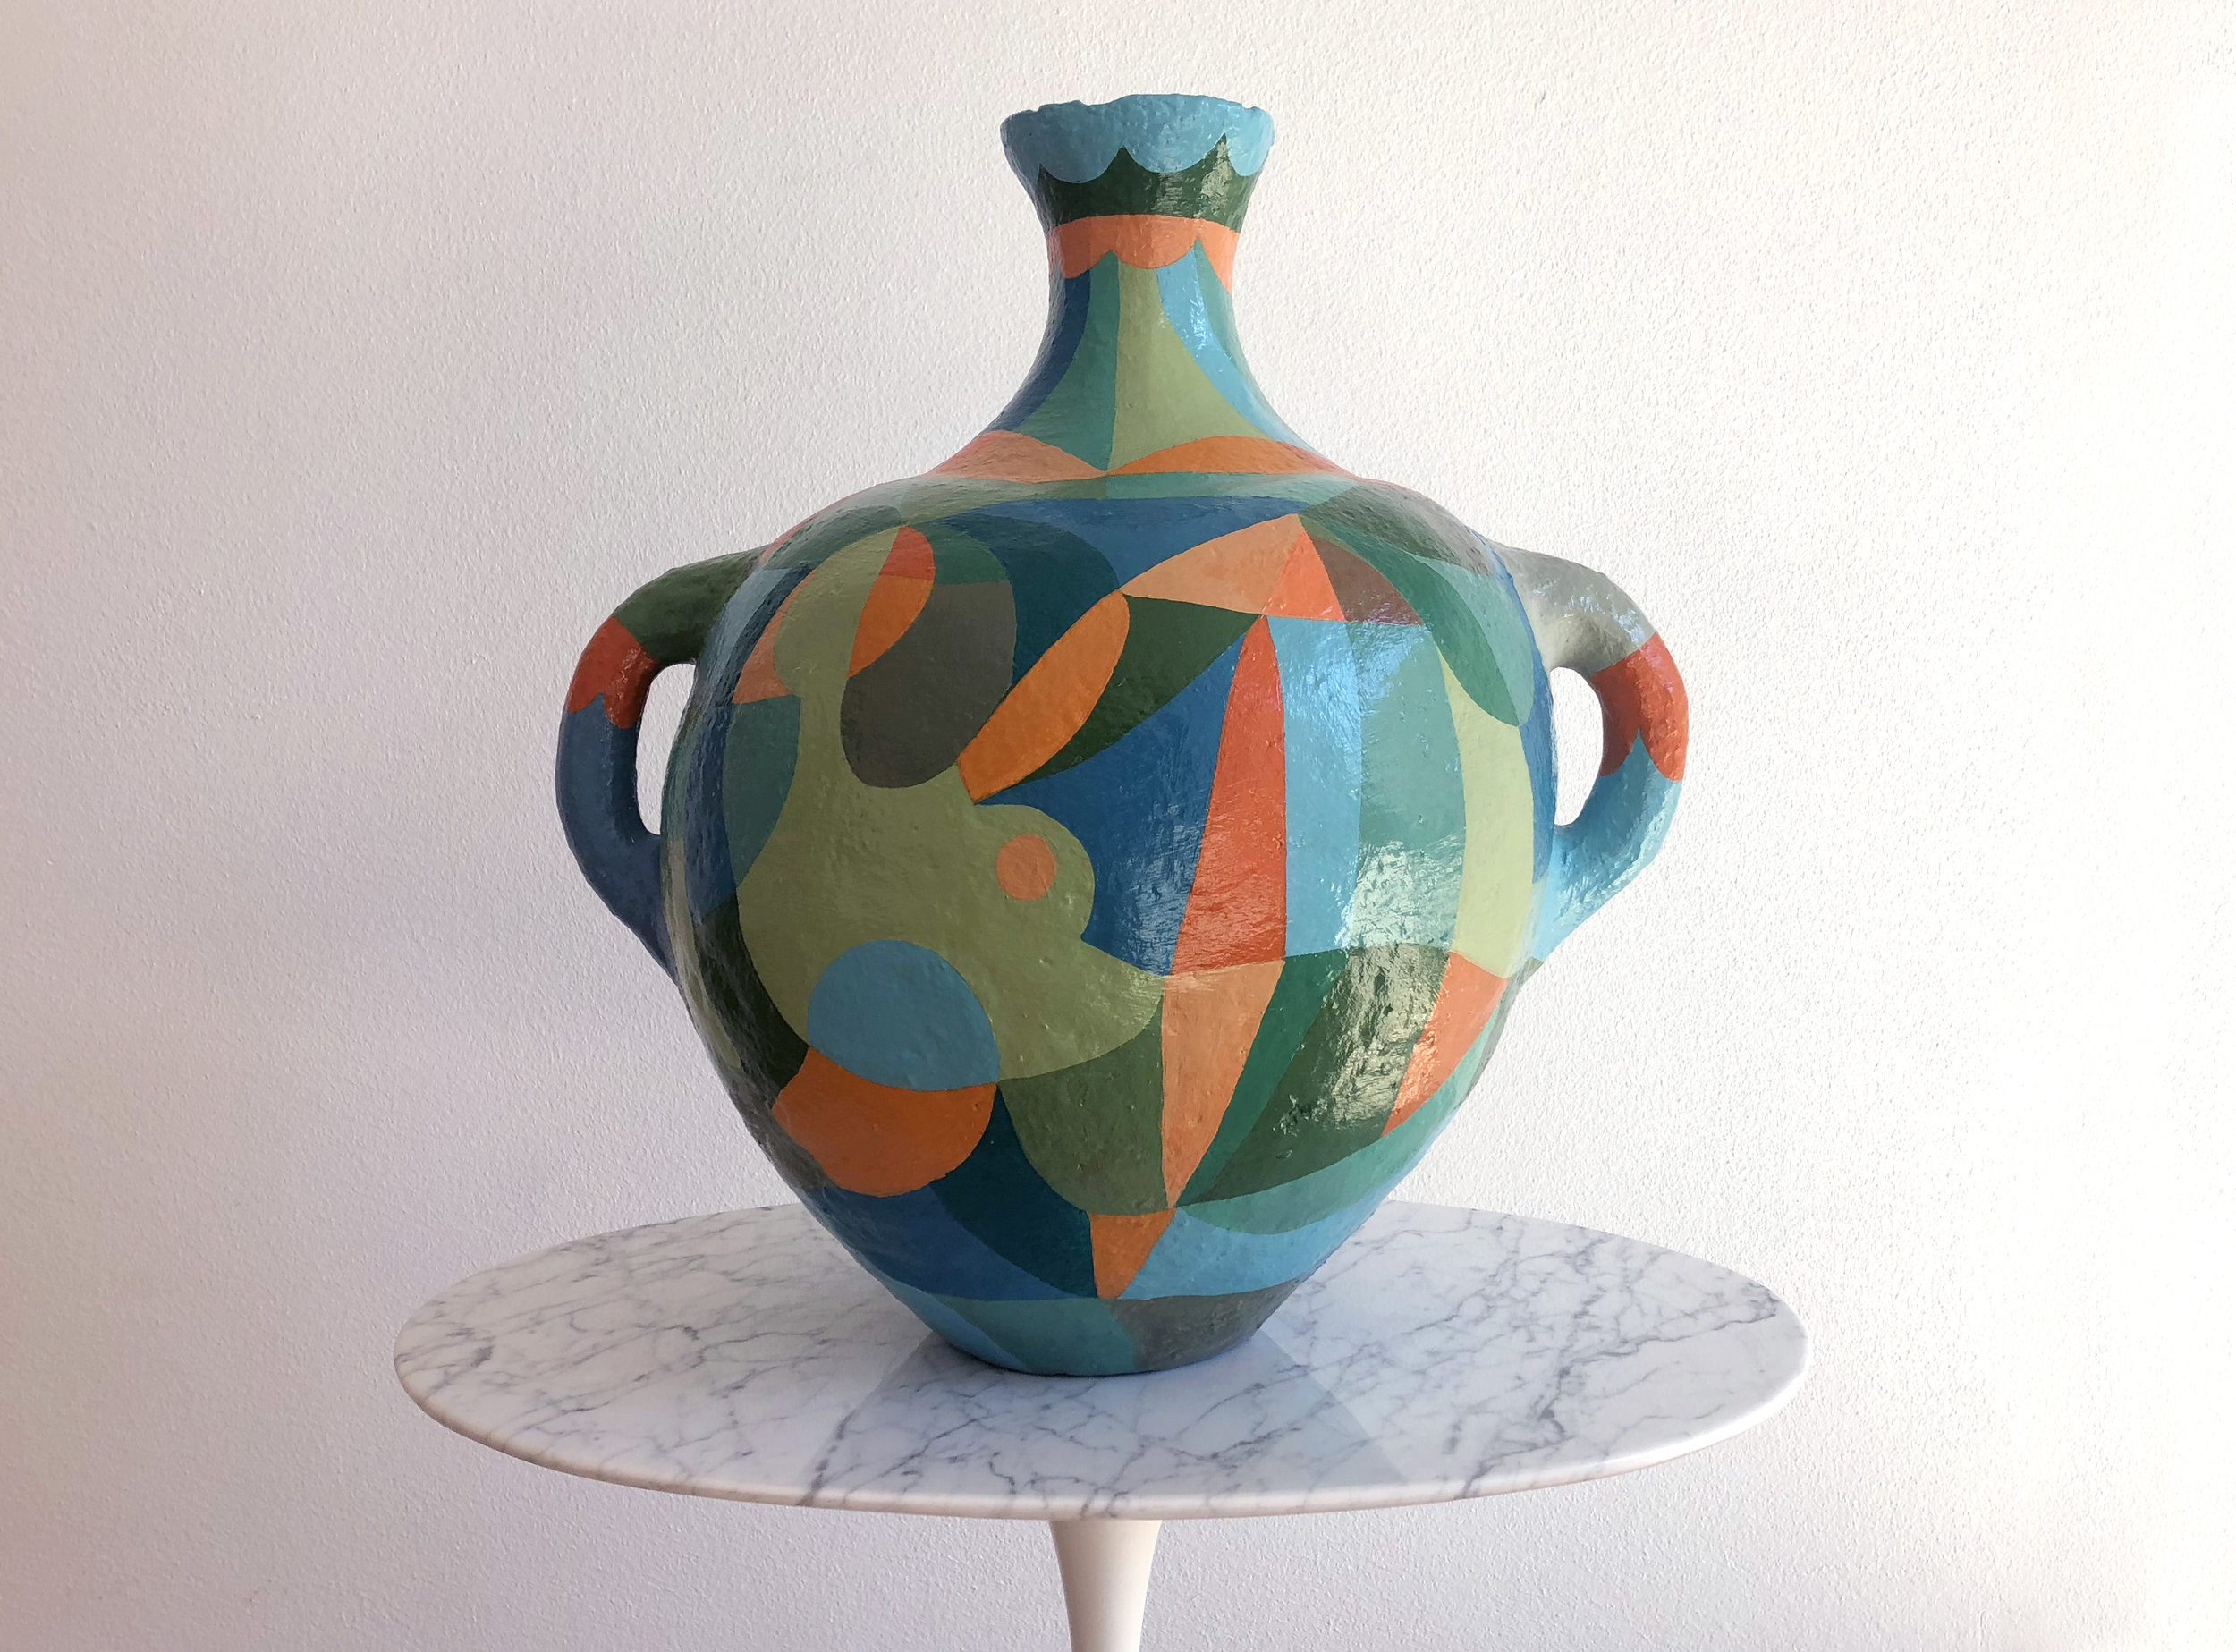 """Liselotte Watkins   Bella  2017 Painted Terracotta 50 x 50 cm  """"I love simple and beautiful things. Liselotte Watkins, a formerly genious fashion illustrator, has found ceramic vases at markets in Rome and just give in to the archaic beauty of the old shapes. With her inventive and decorative pattern, she's made them totally hers, but also she pays a tribute to all the women that once created the urns and used them in the household.""""   Available"""